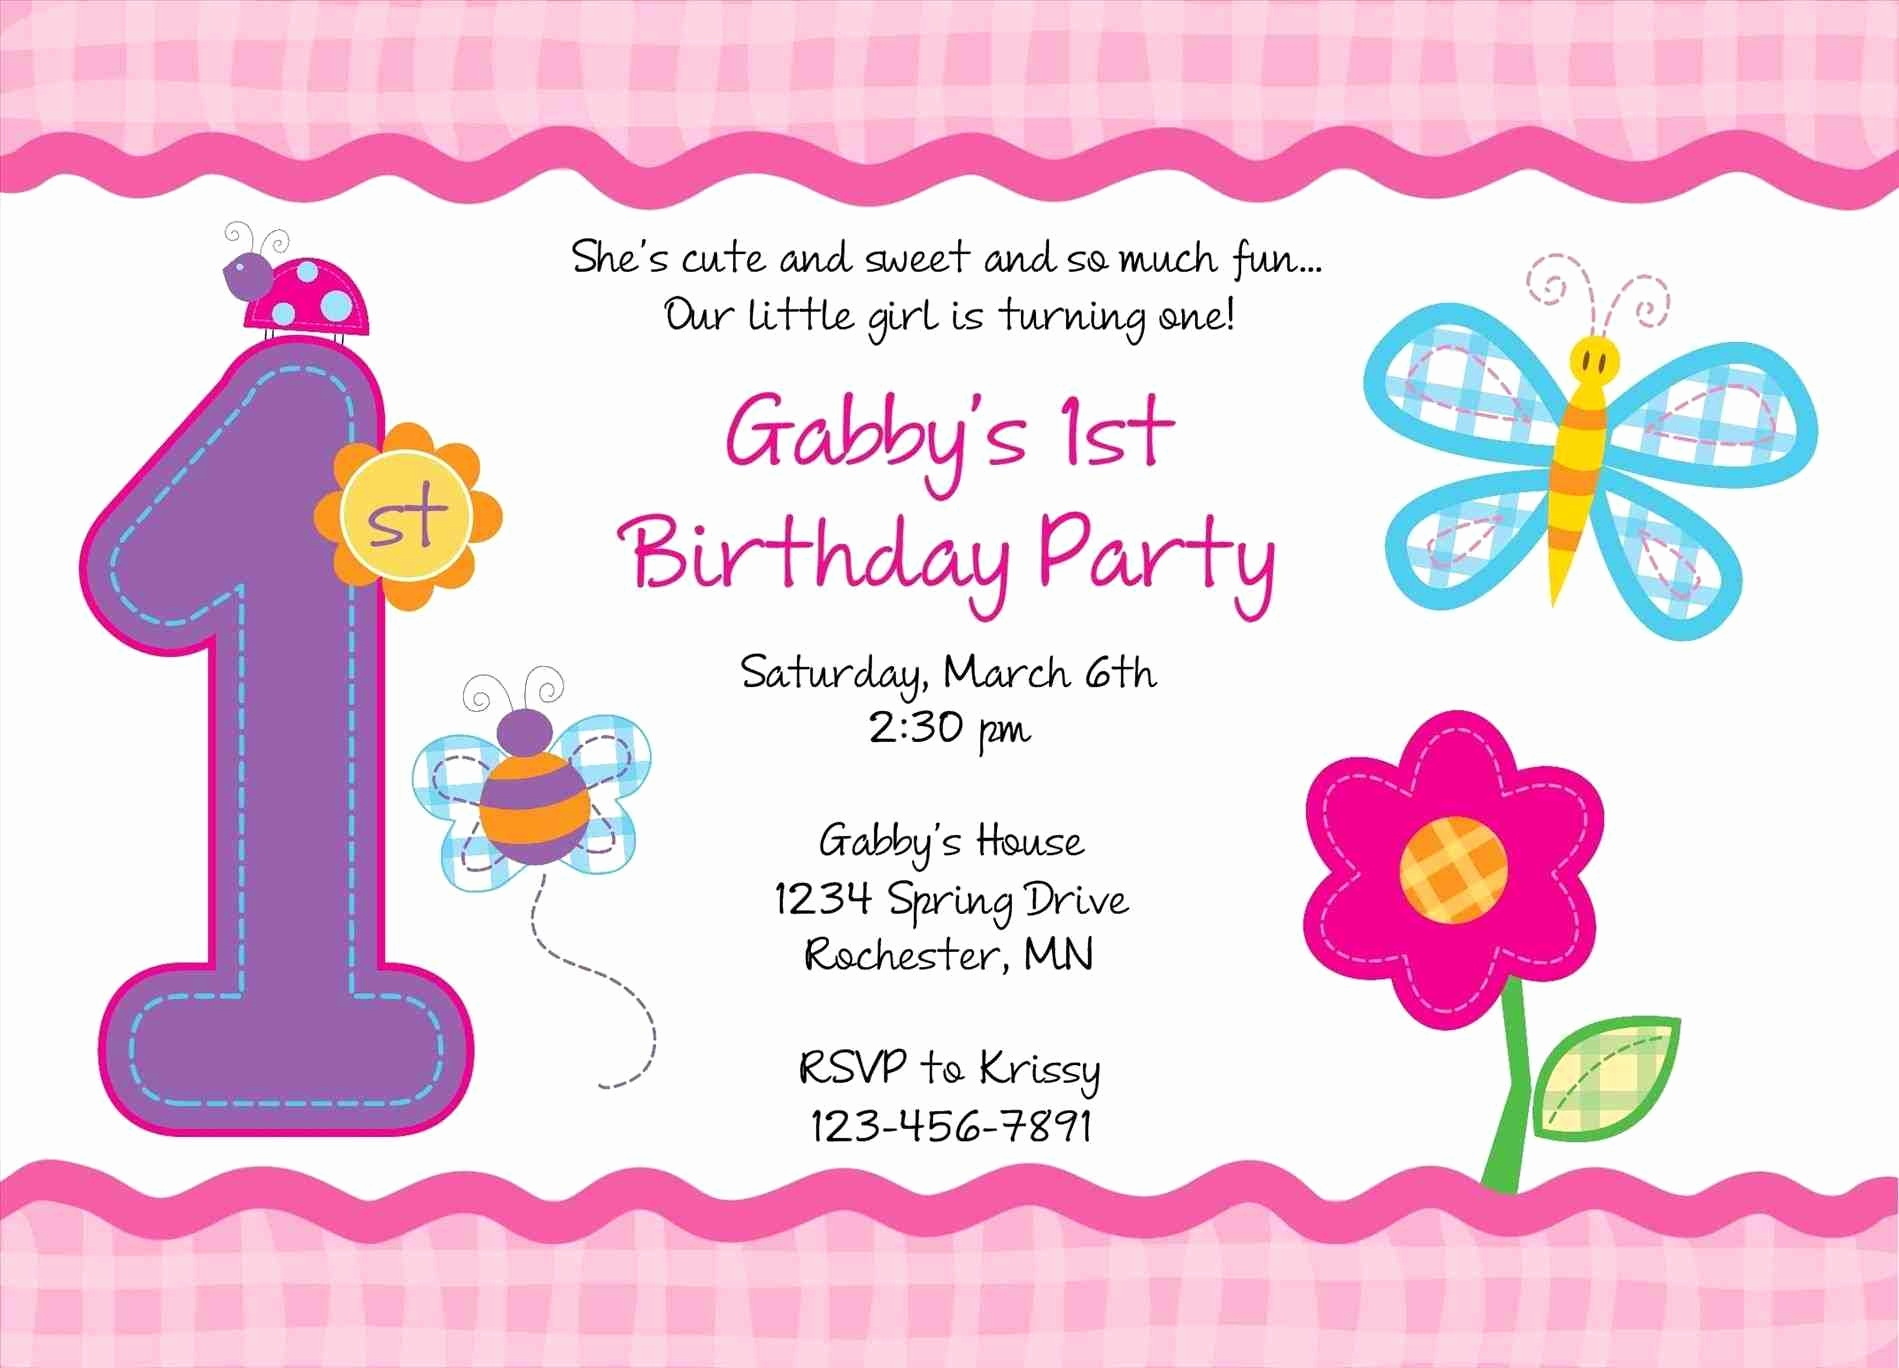 baby girl 1st birthday card messages ; 1st-birthday-card-message-lovely-template-1st-birthday-invitation-message-for-baby-girl-st-card-of-1st-birthday-card-message